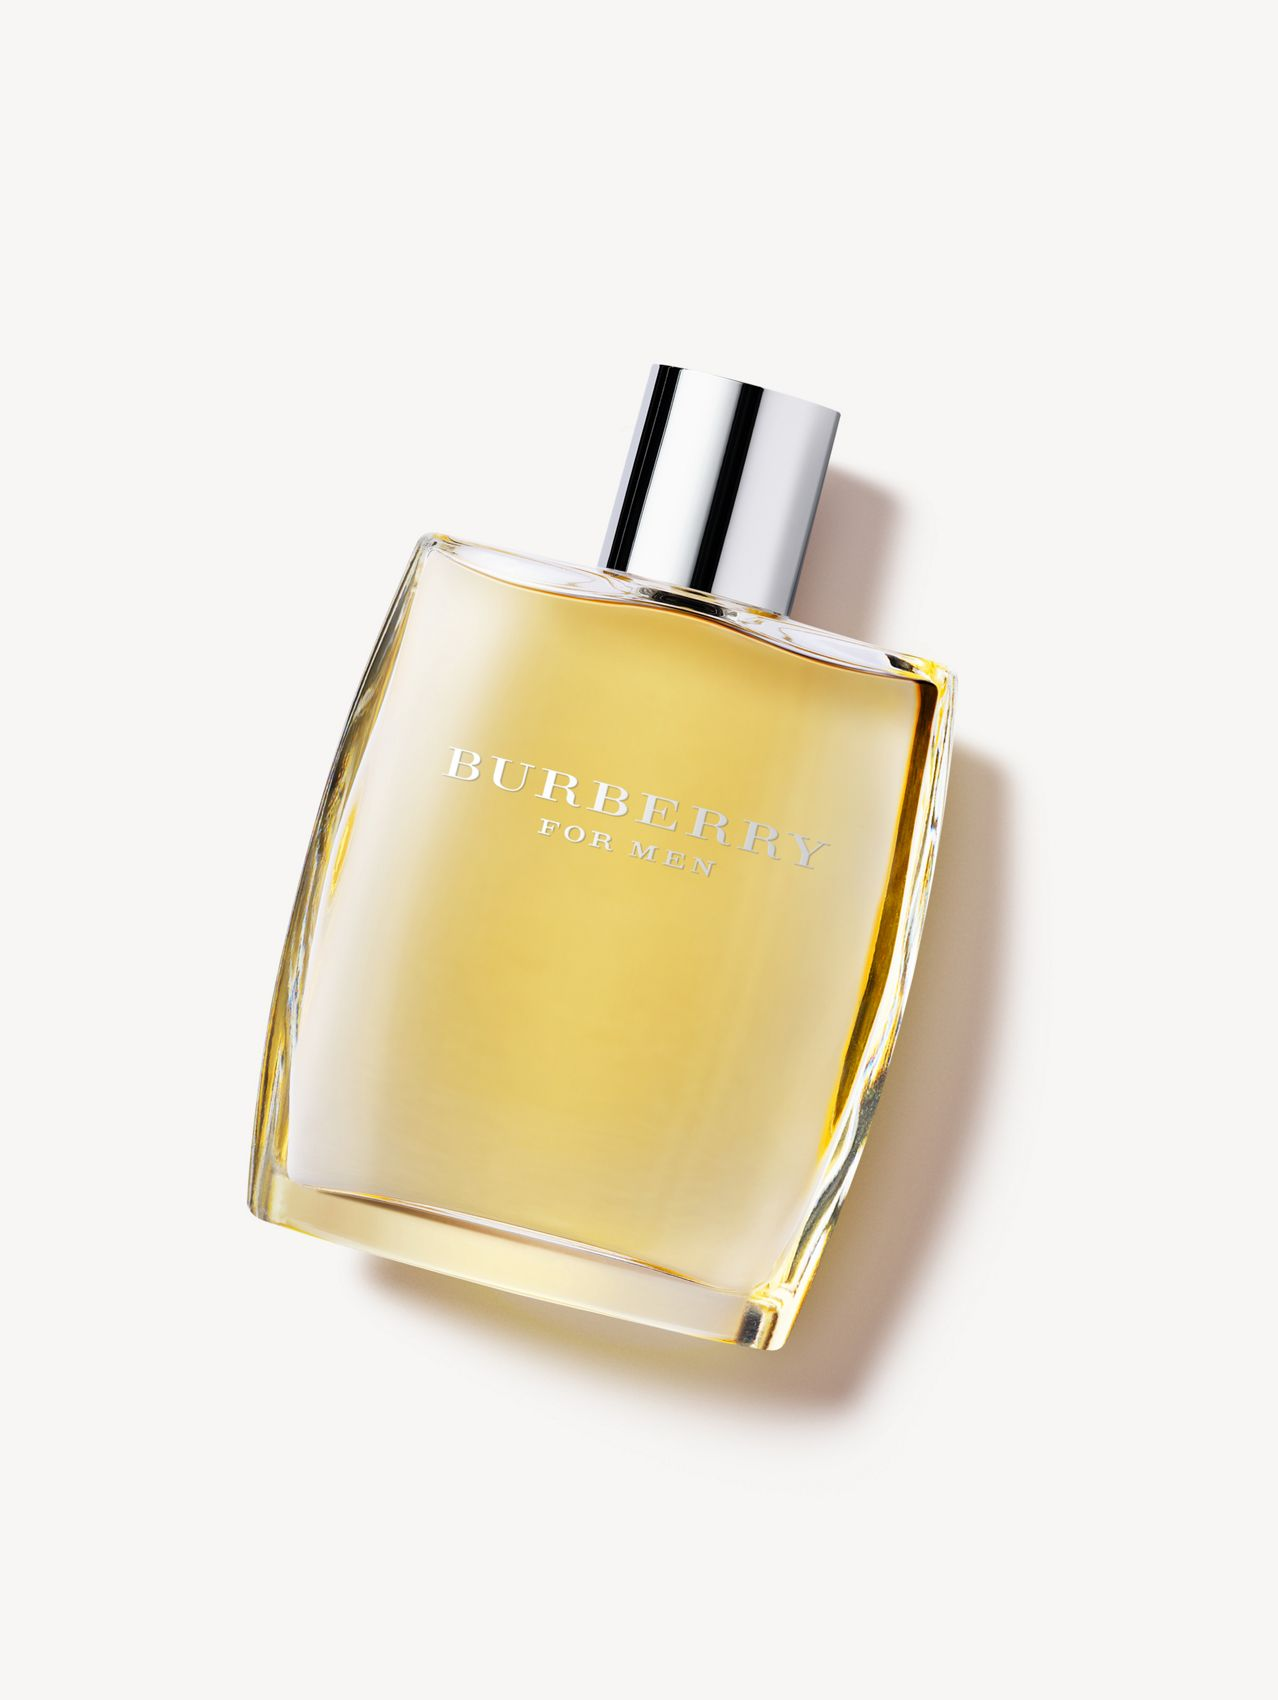 Burberry For Men Eau de Toilette 100ml